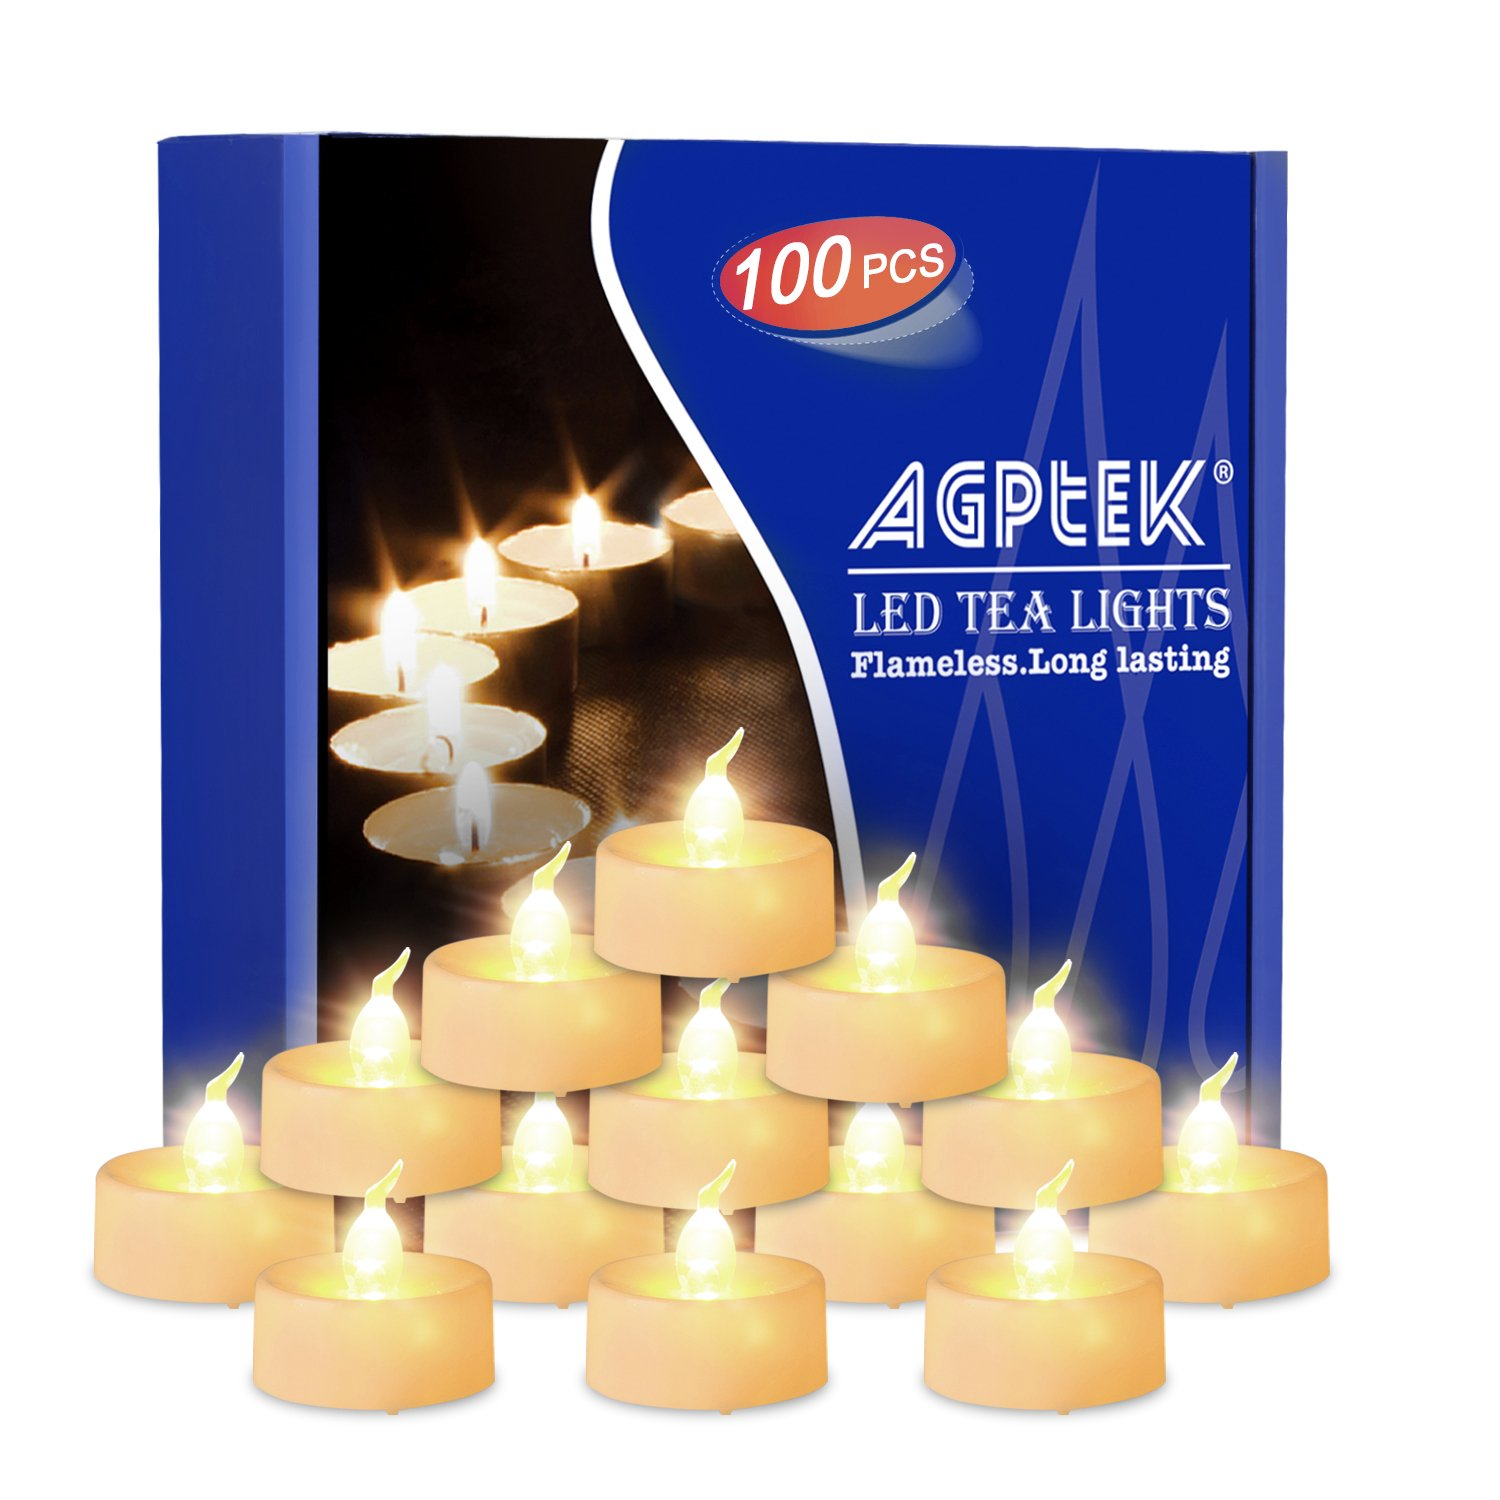 AGPtEK 100pcs Flickering LED Flameless Tealight Candles Battery-Operated Tealights For Wedding Holiday Party Home Decoration (Warm White)